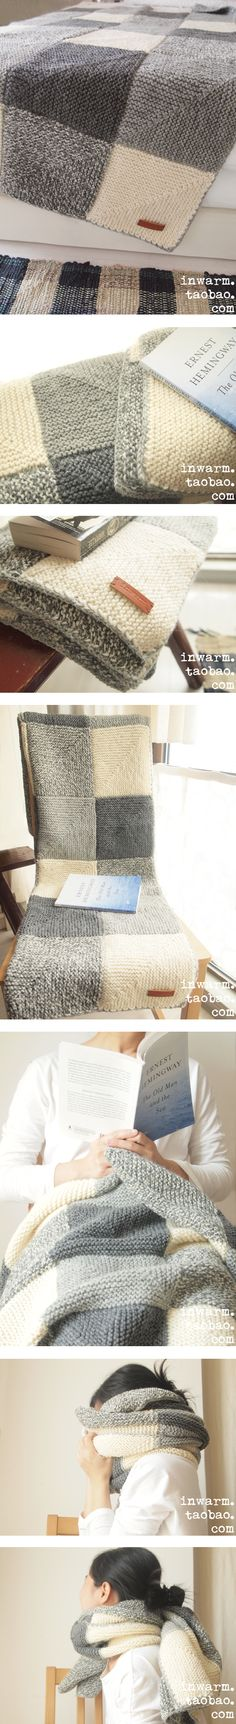 Mitered square afghan - inspiration